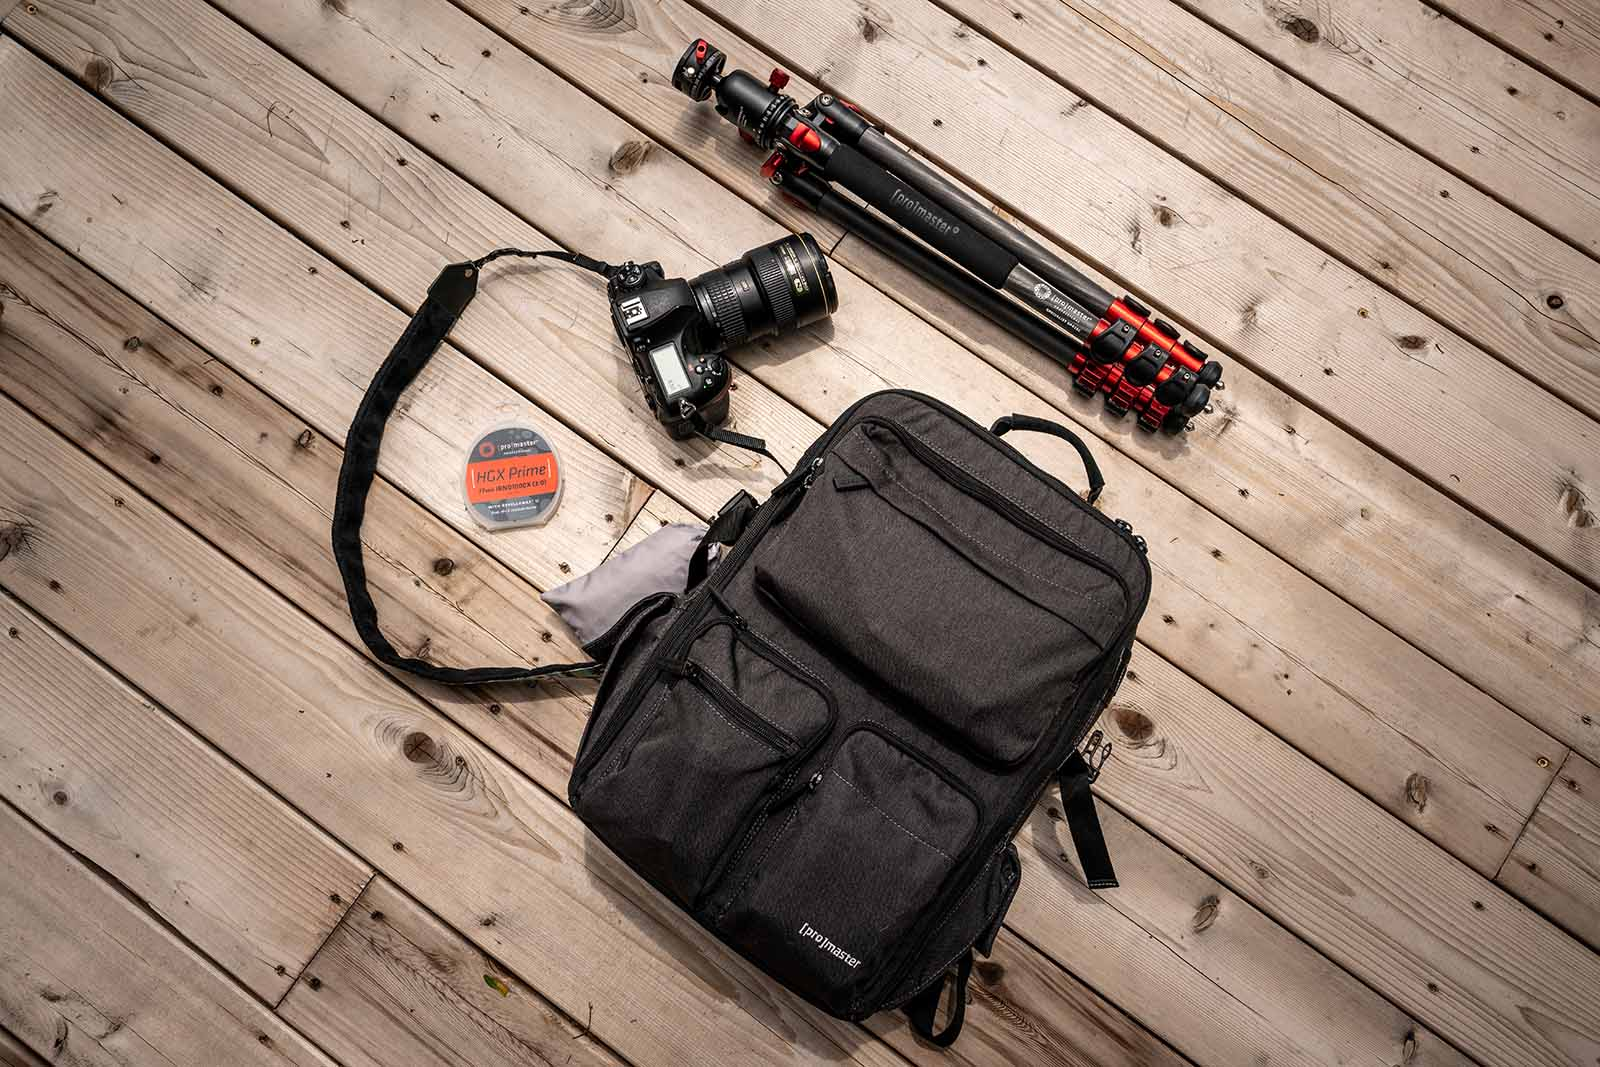 ProMaster backpack and tools